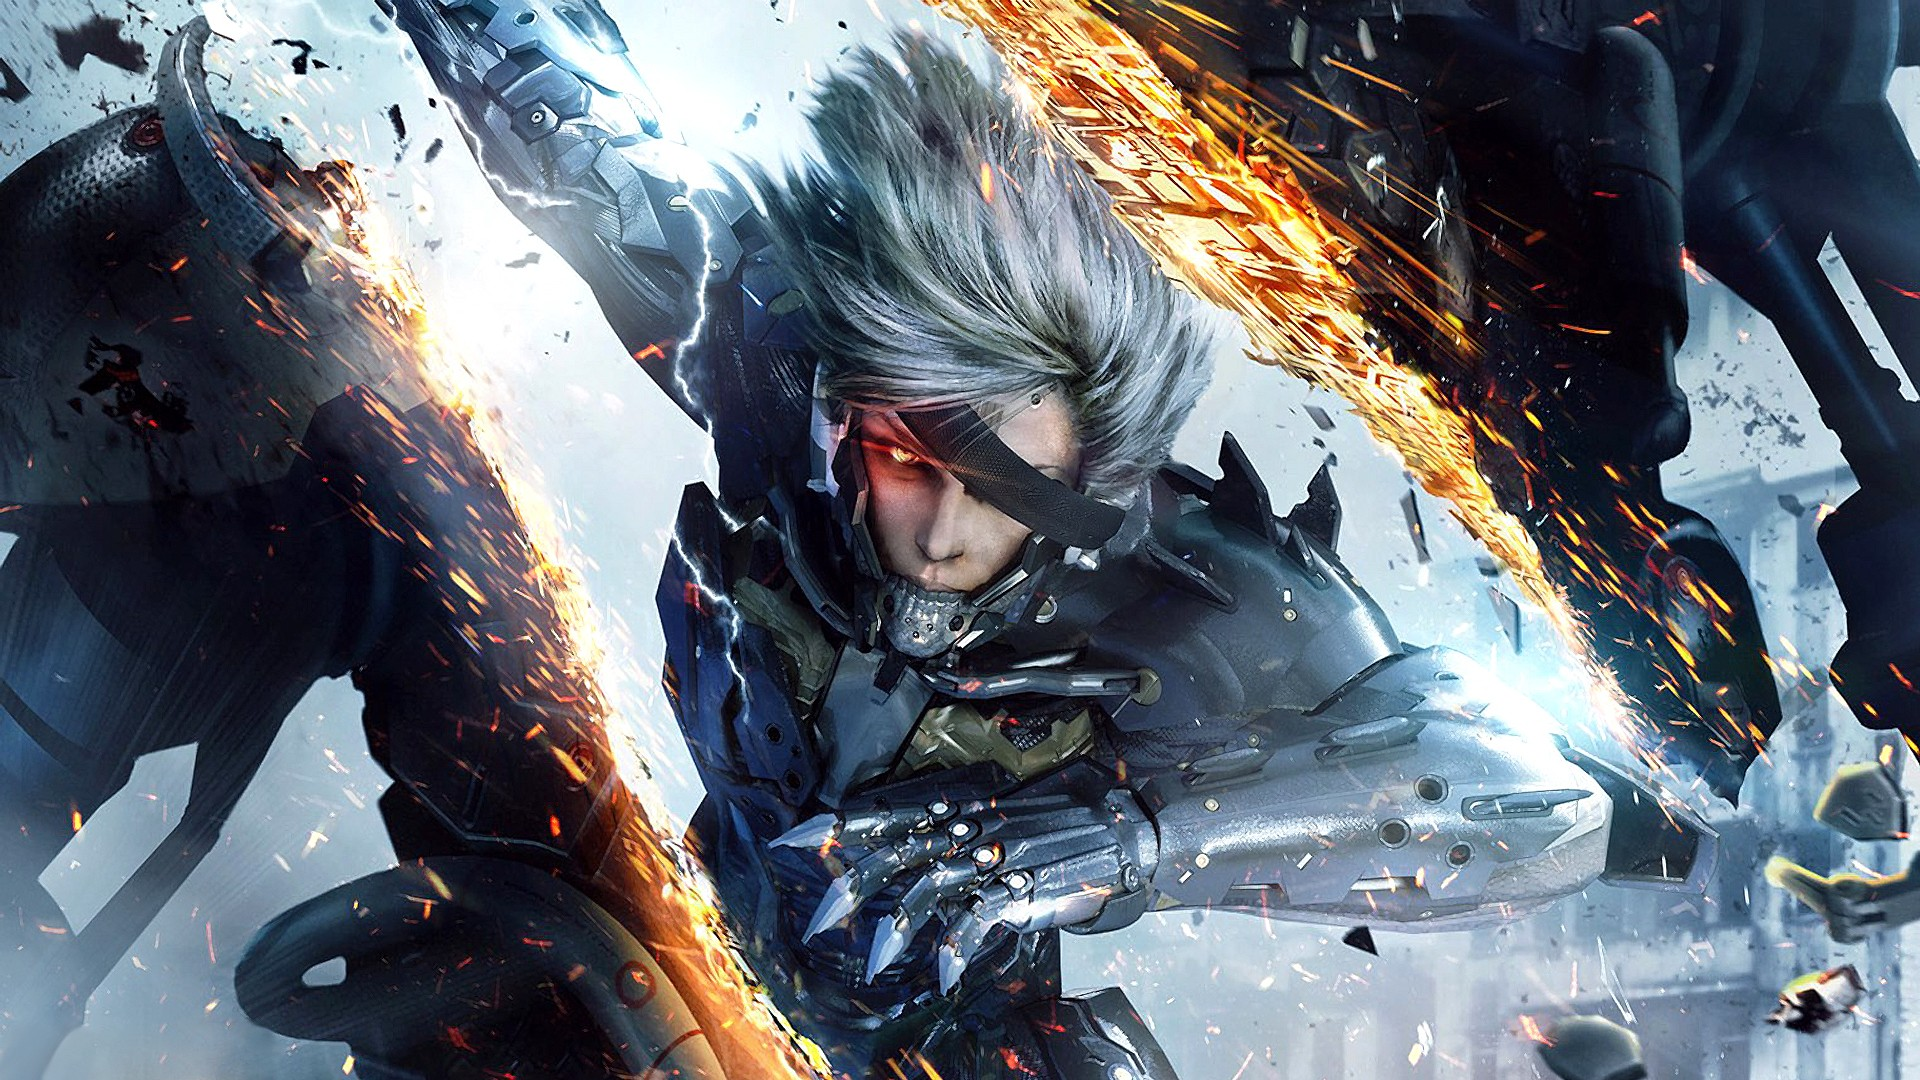 Review | Metal Gear Rising: Revengeance